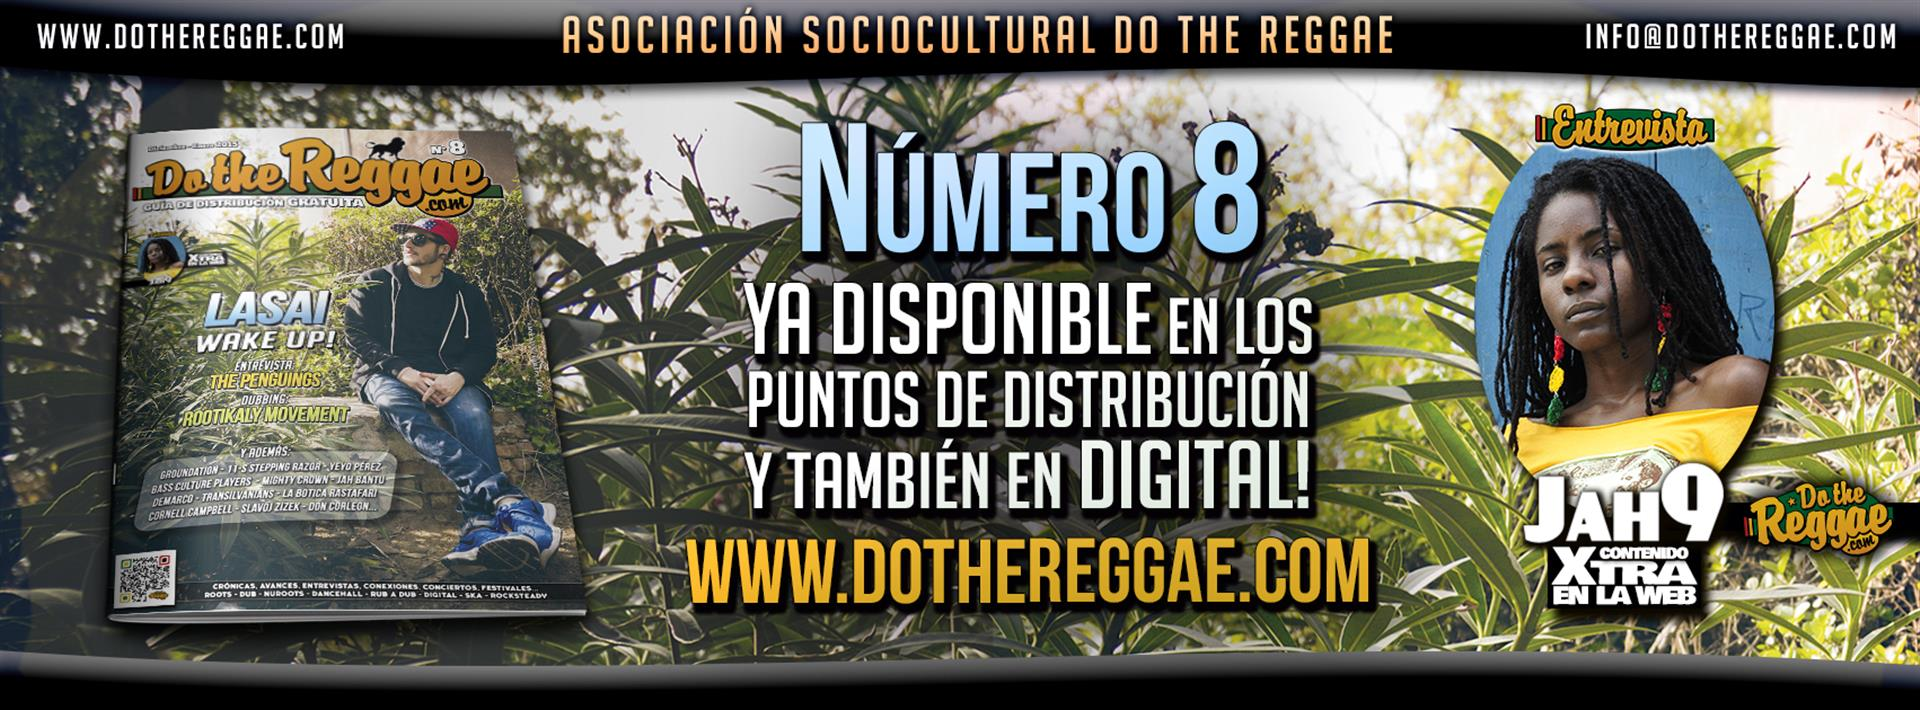 PROMO NÚMERO 8 descarga digital (Large)